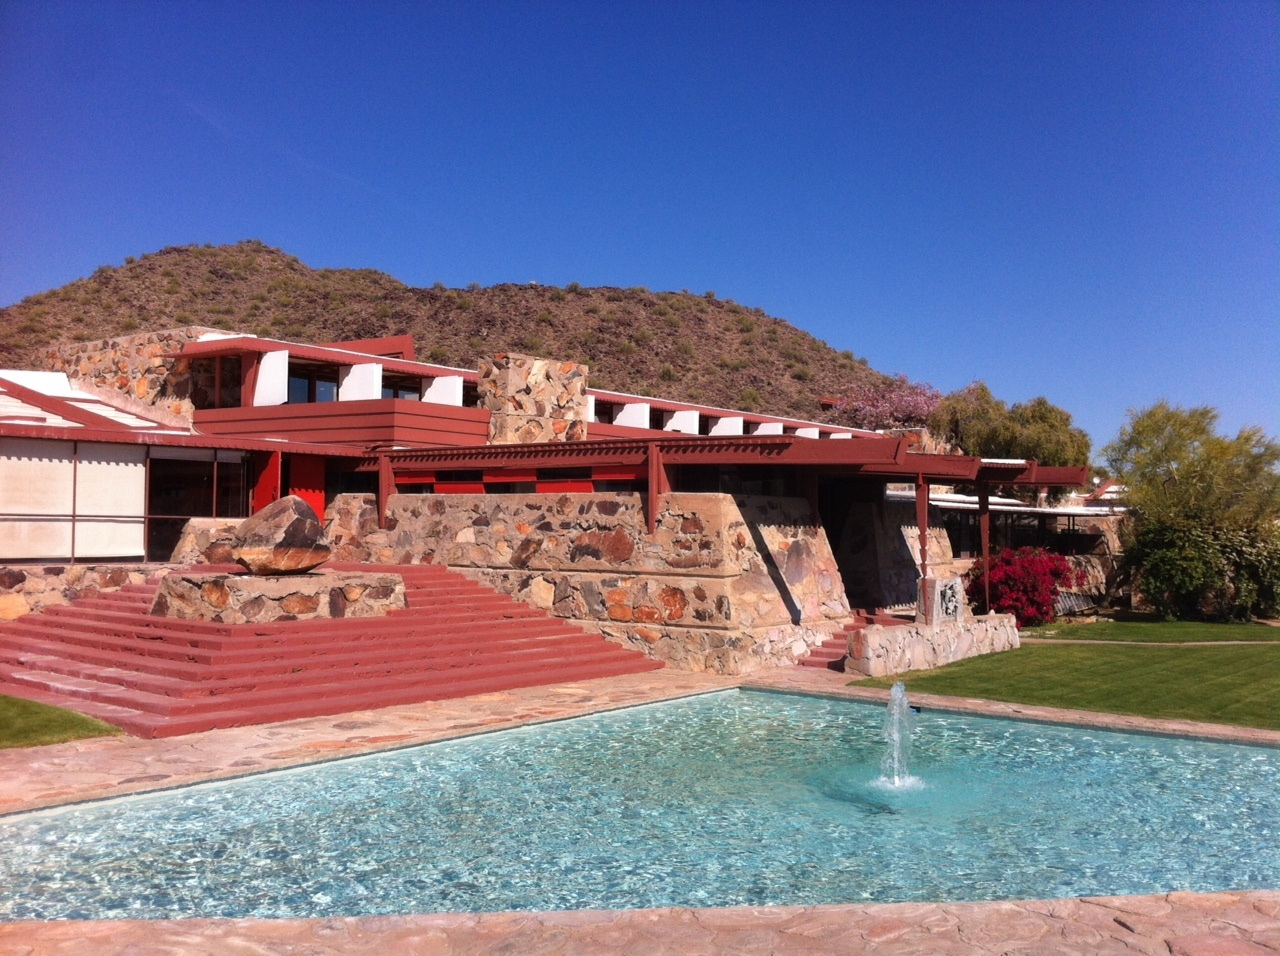 The Frank Lloyd Wright house with pool and front lawn looks more like a resort than a home. It is a good example of Prairie Modernism design with its flat roof, strong horizontal lines and broad overhanging eaves. This school of architecture was inspired by the strong horizontal horizon line and the flatness of the prairie landscape.